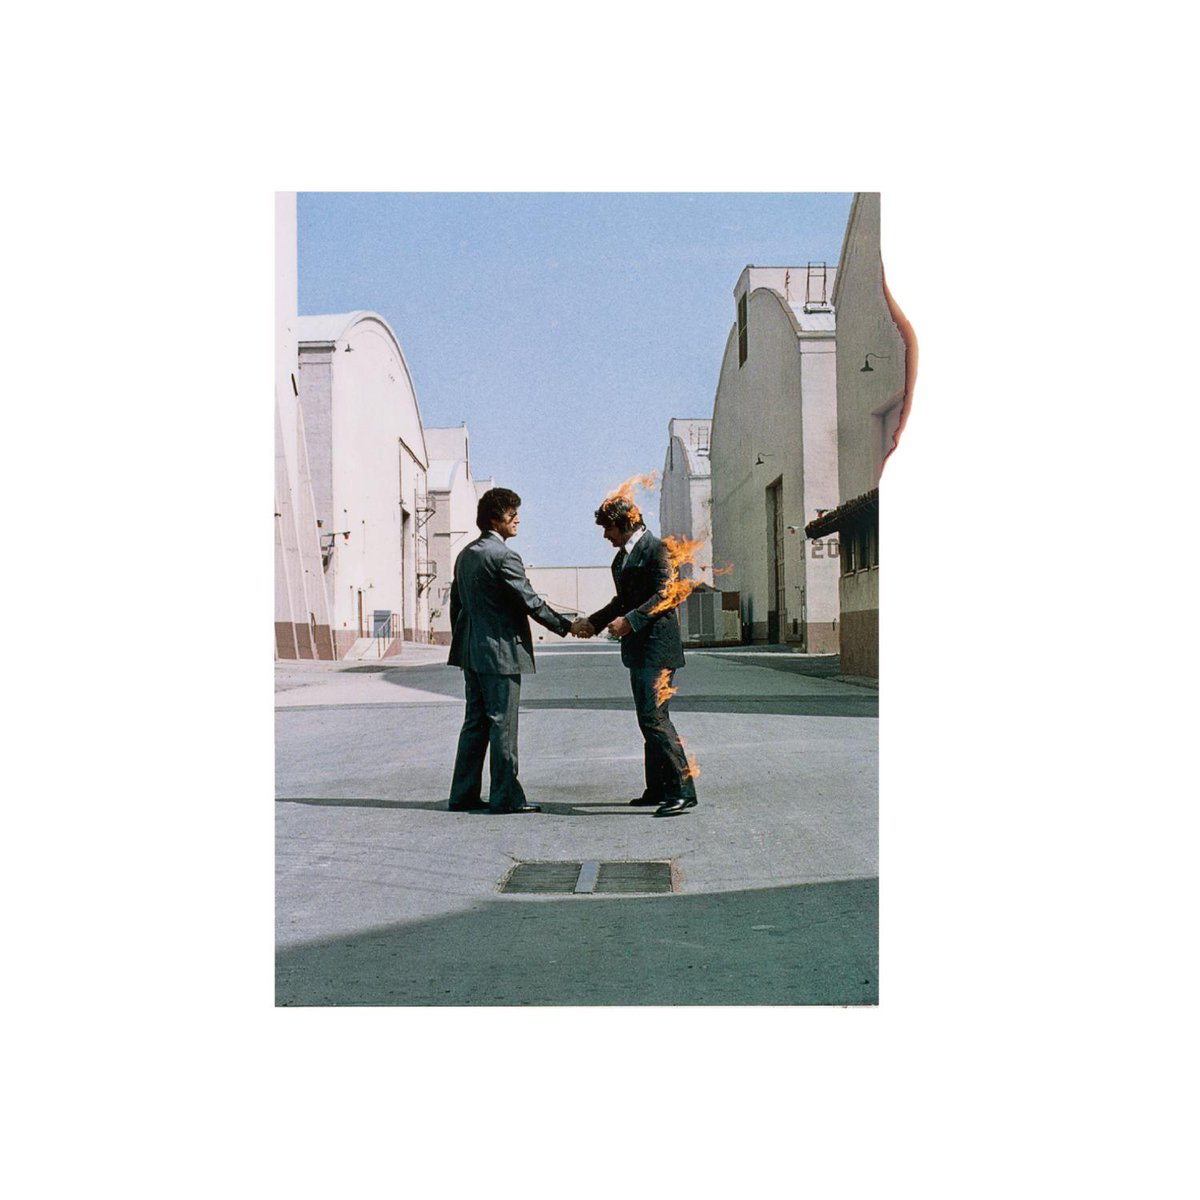 What was the significance of the handshake on the cover of Wish You Were Here, released today in 1975? https://t.co/ydP1IBH7YK